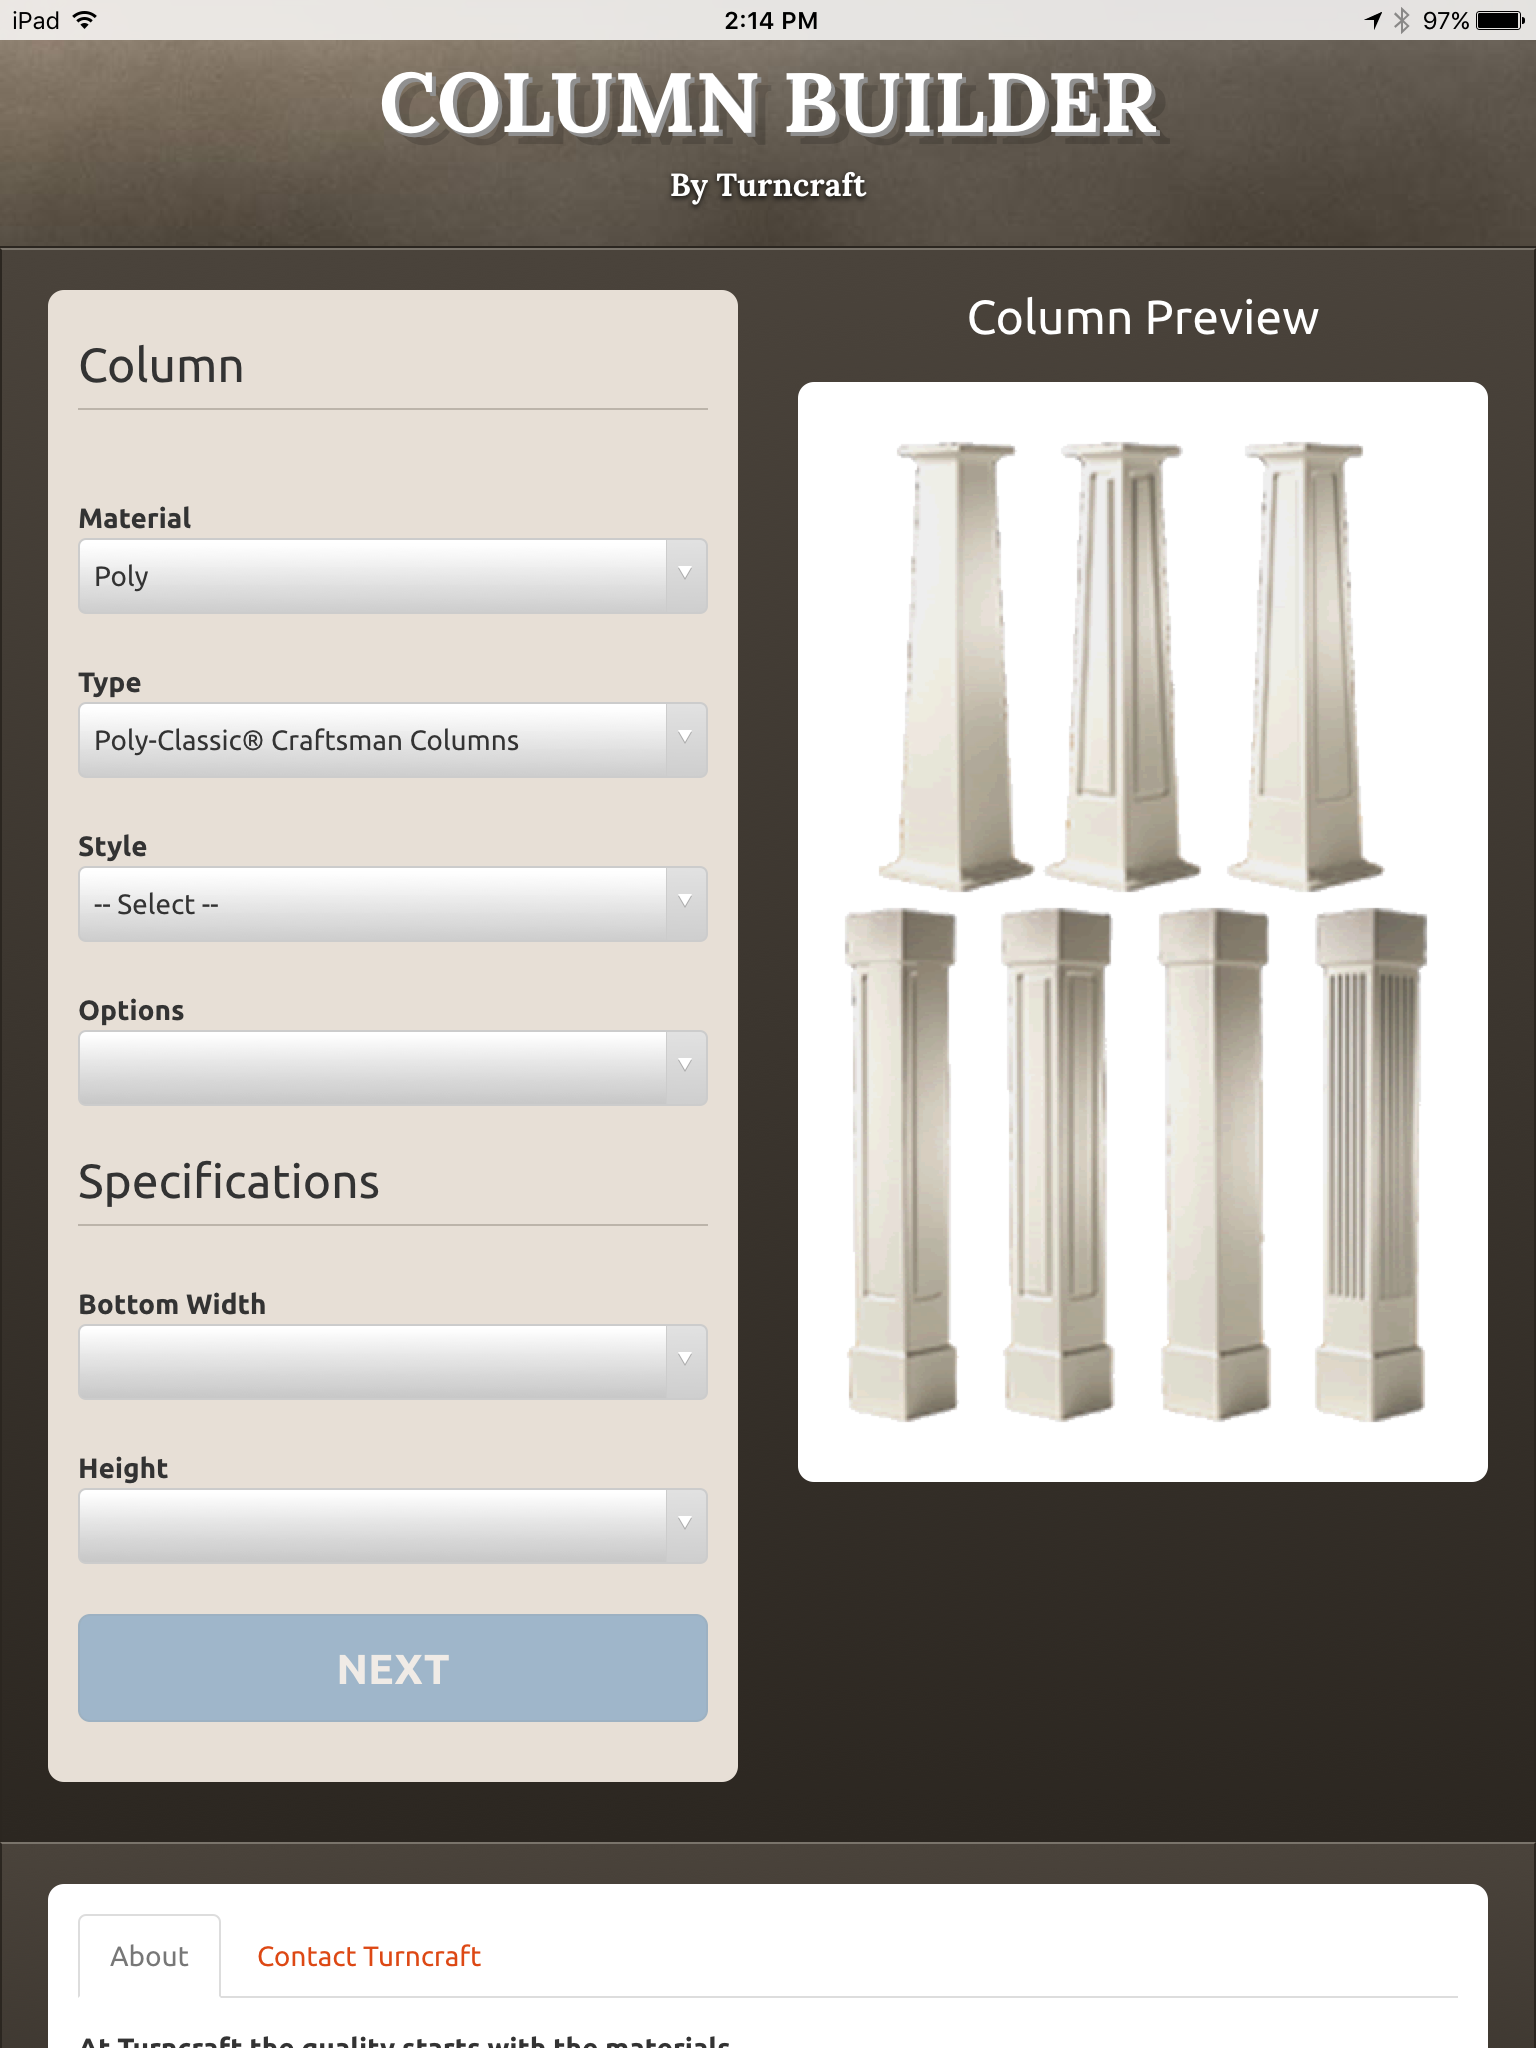 Turncraft Column Builder App